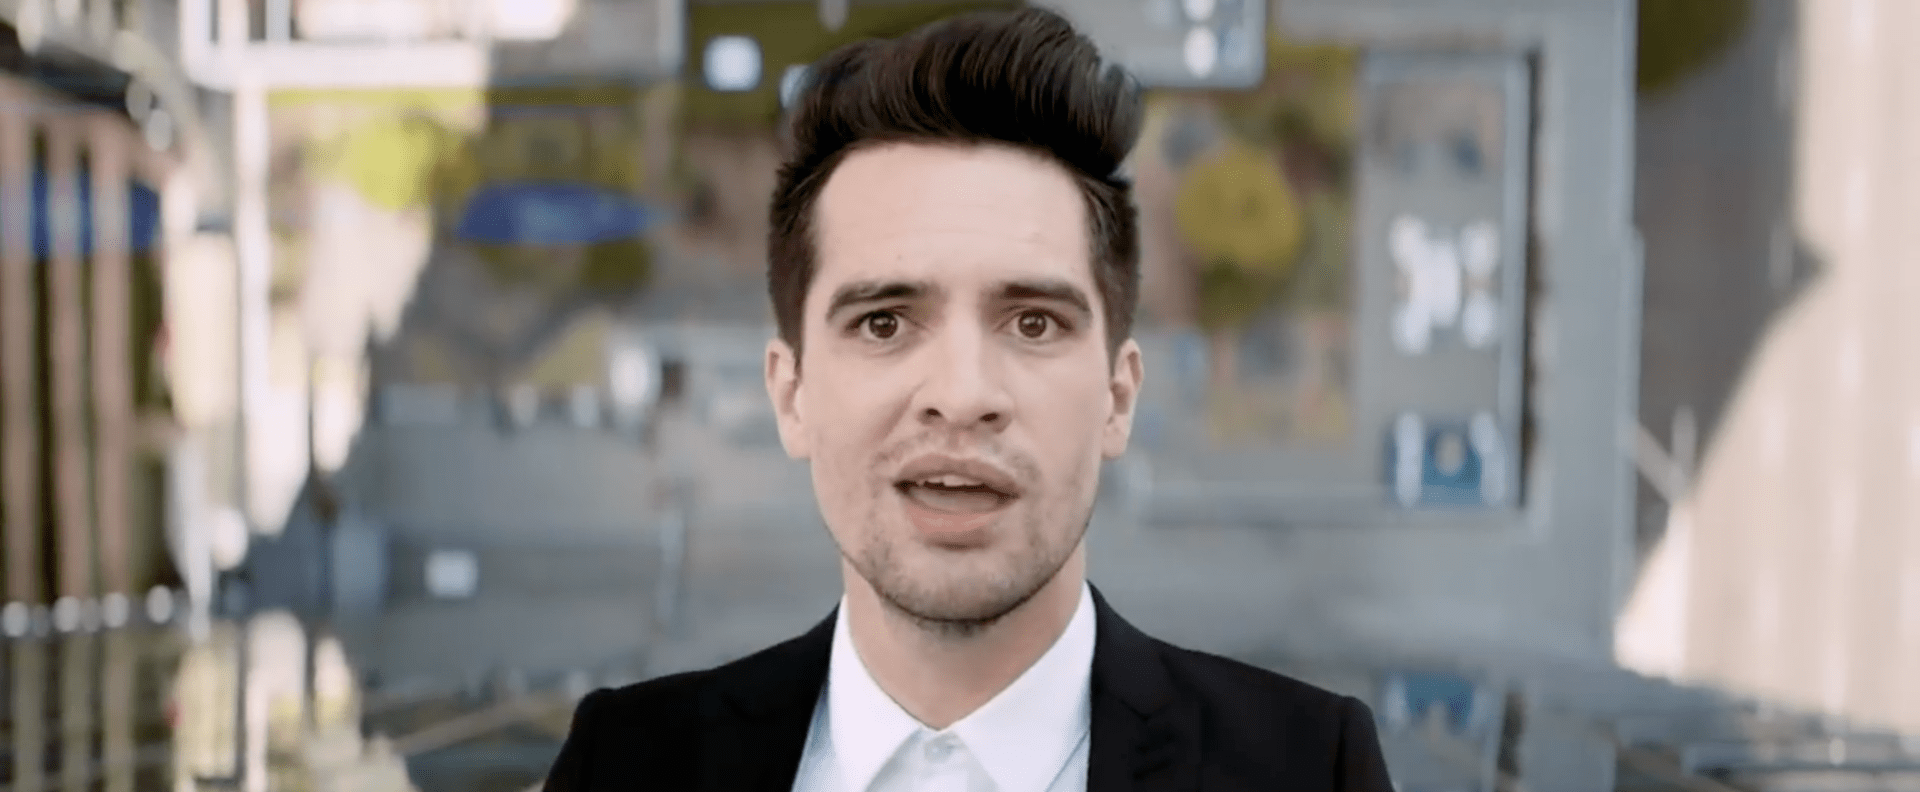 Panic! At The Disco's 'high Hopes' Just Reached A New Peak Chart Position, Making History